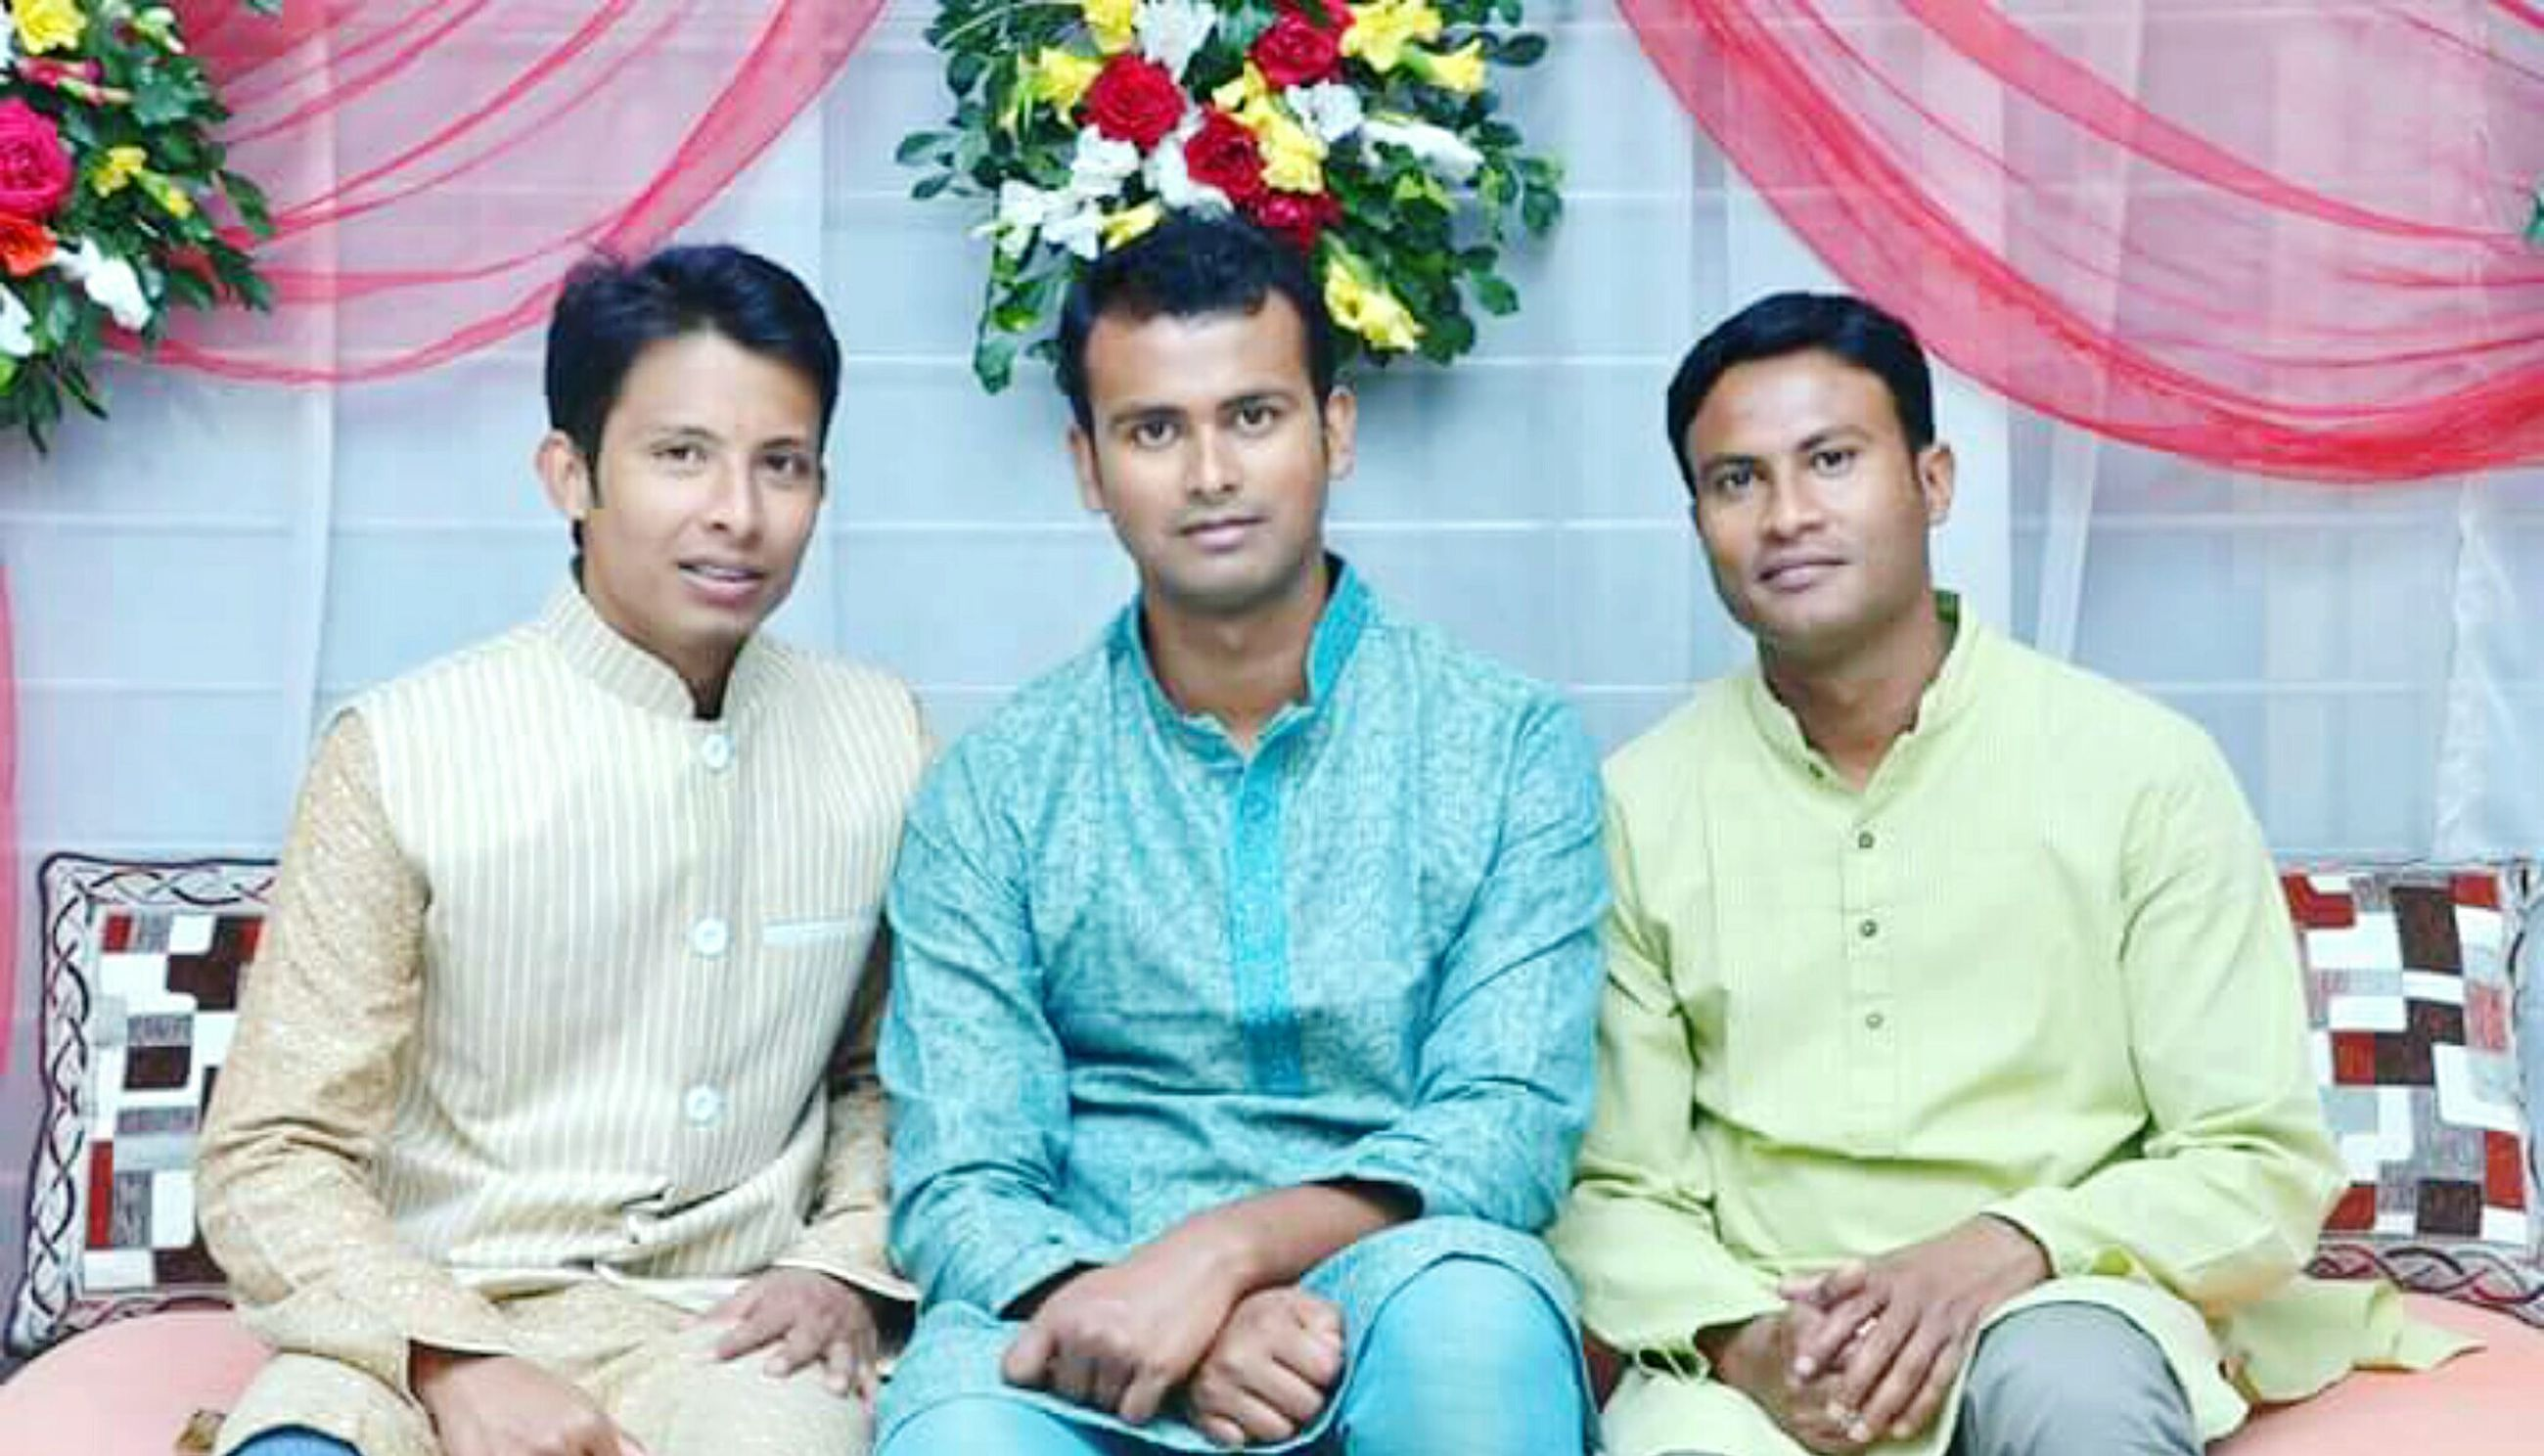 togetherness, bonding, lifestyles, friendship, love, leisure activity, person, casual clothing, portrait, front view, smiling, young men, looking at camera, happiness, family, young adult, sitting